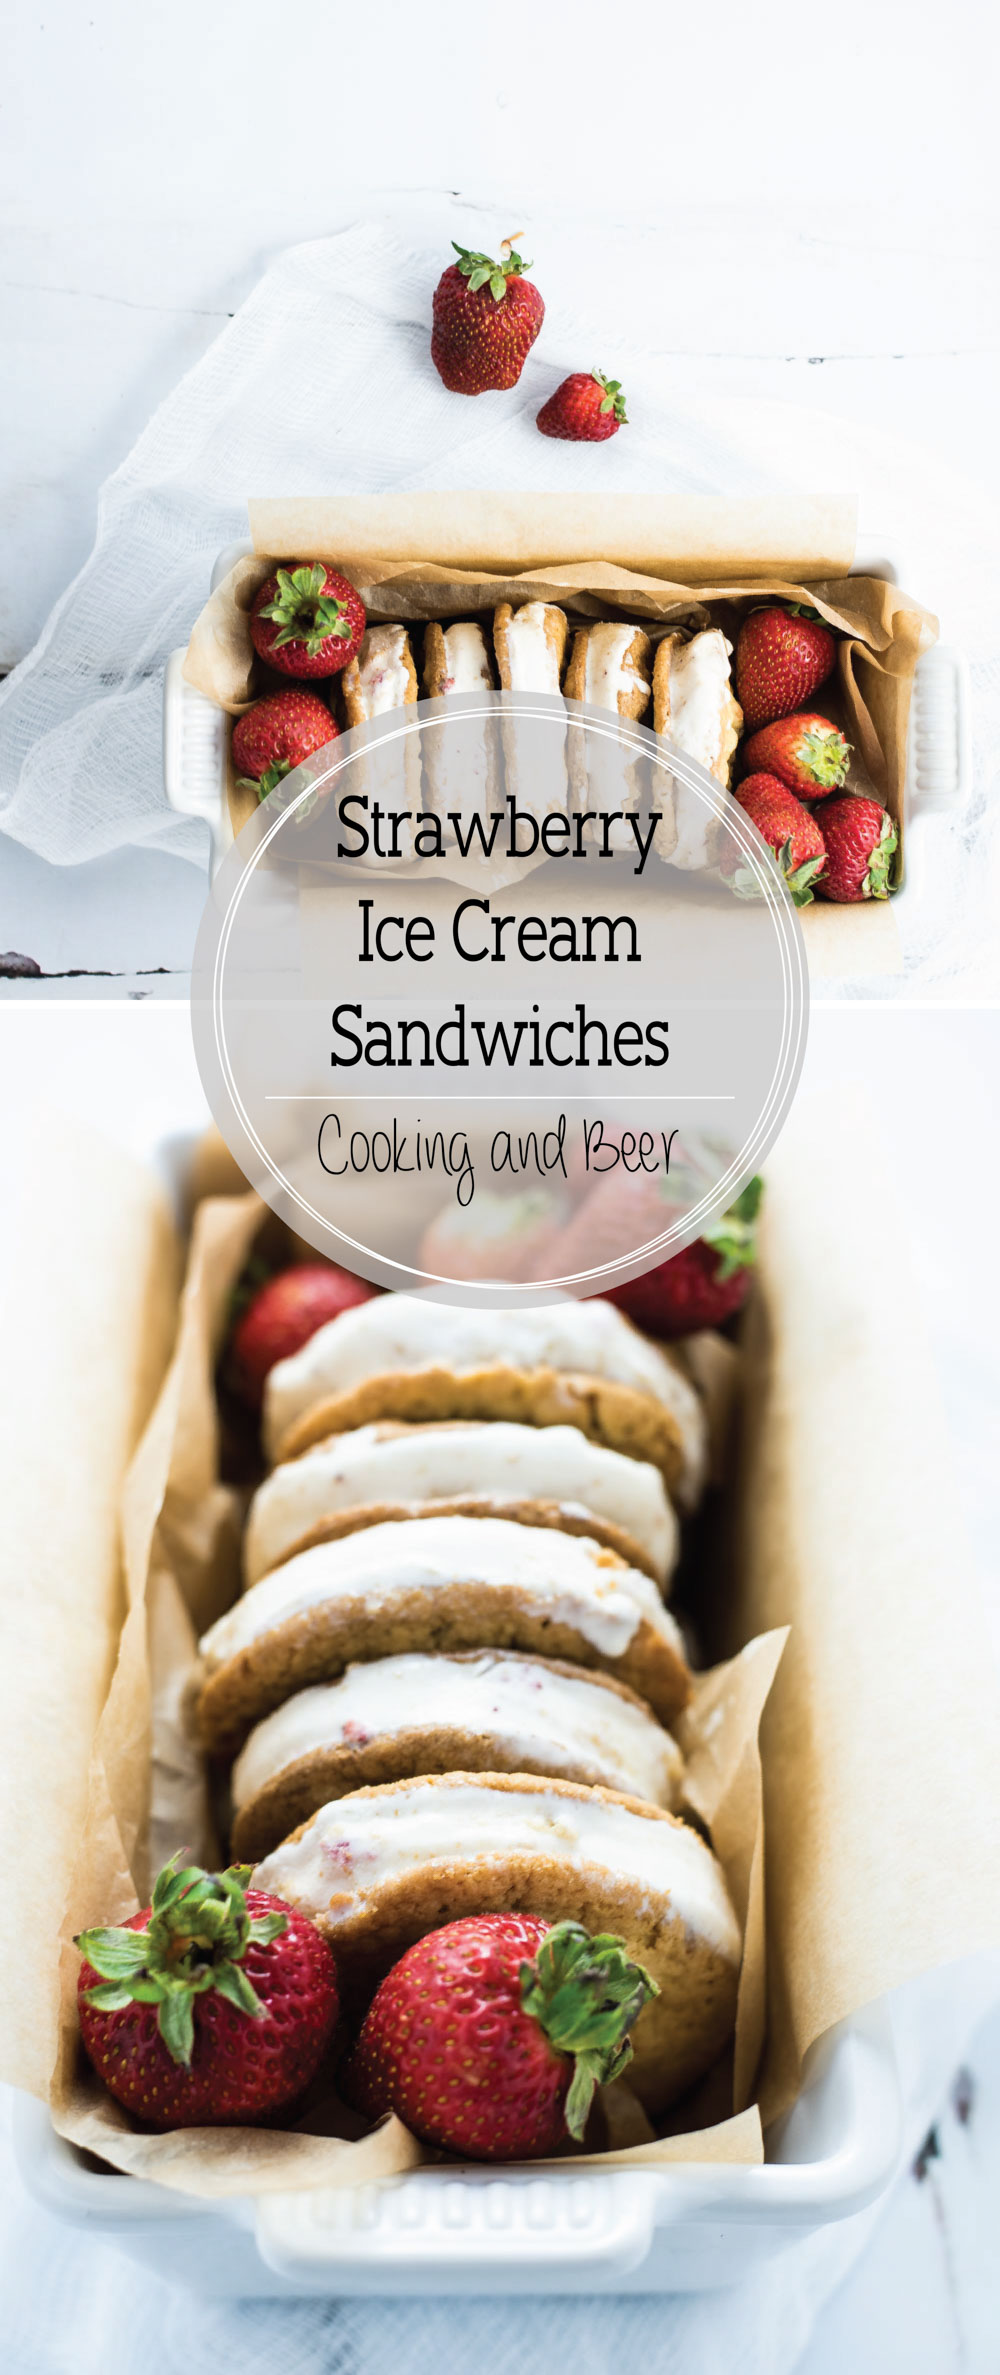 Strawberry Ice Cream Sandwiches are a refreshing way to cool down this summer!